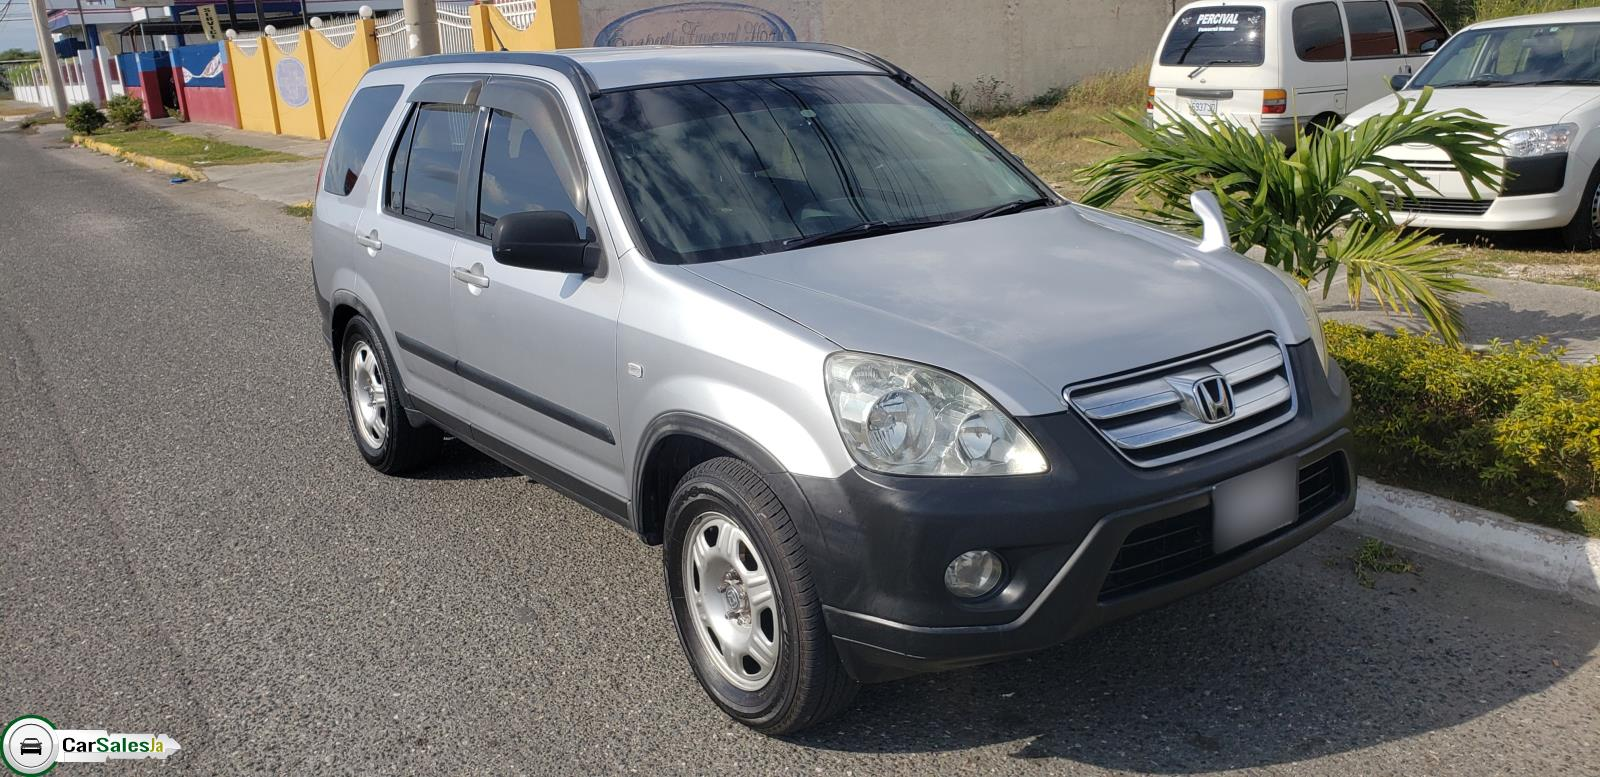 Cars for sale in Jamaica, Honda CR-V Car for sale in Jamaica